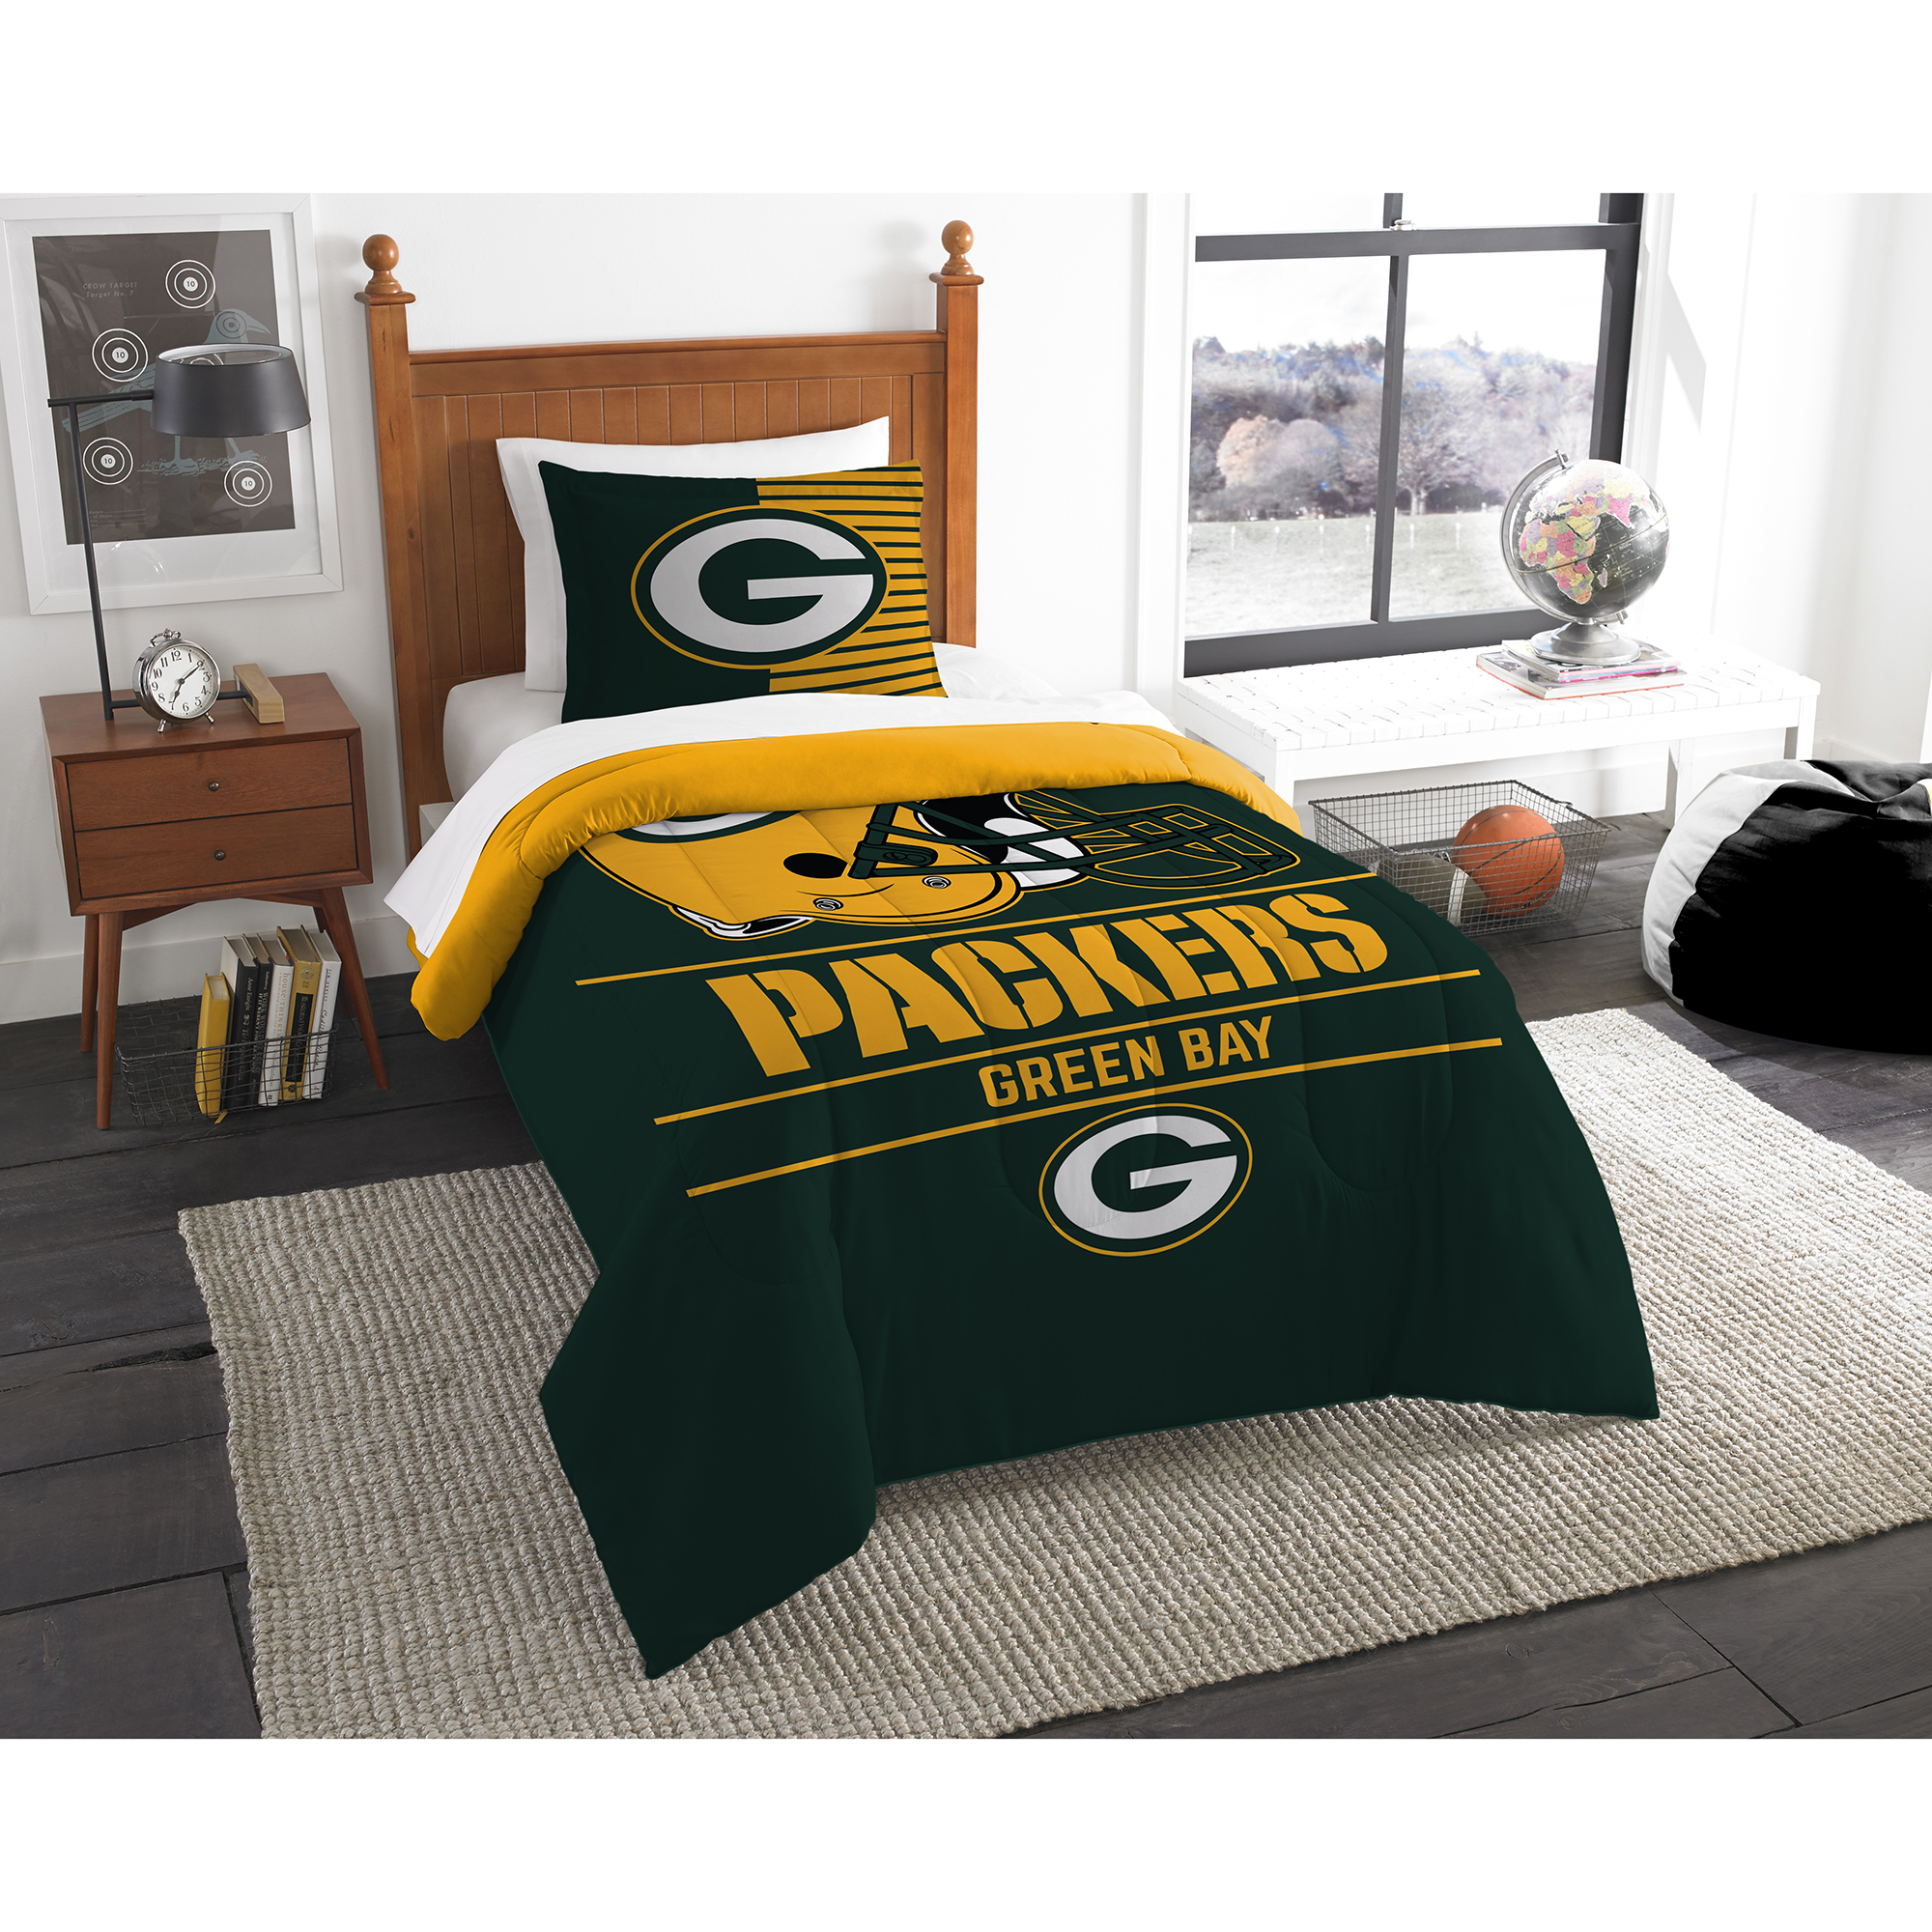 Green Bay Packers The Northwest Company NFL Draft Twin Comforter Set - No Size